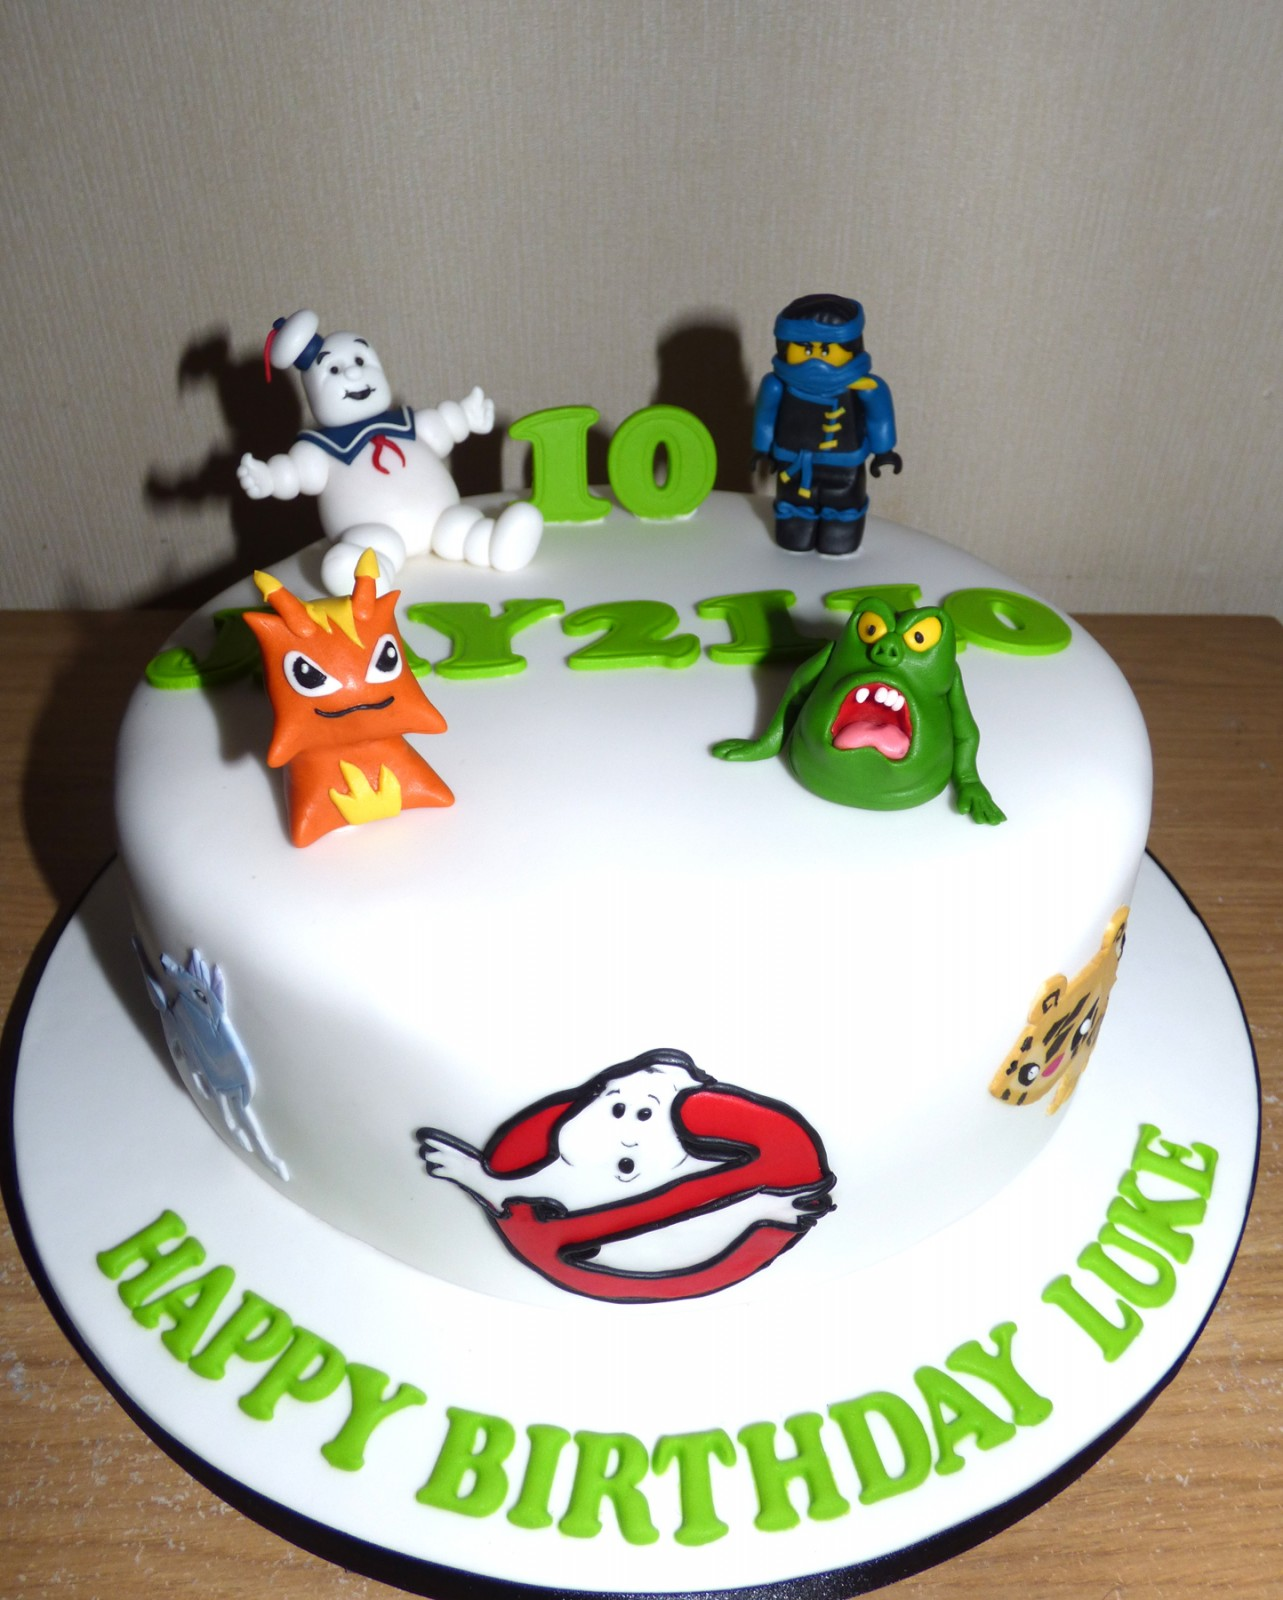 Childs Favourite Characters Birthday Cake « Susies Cakes